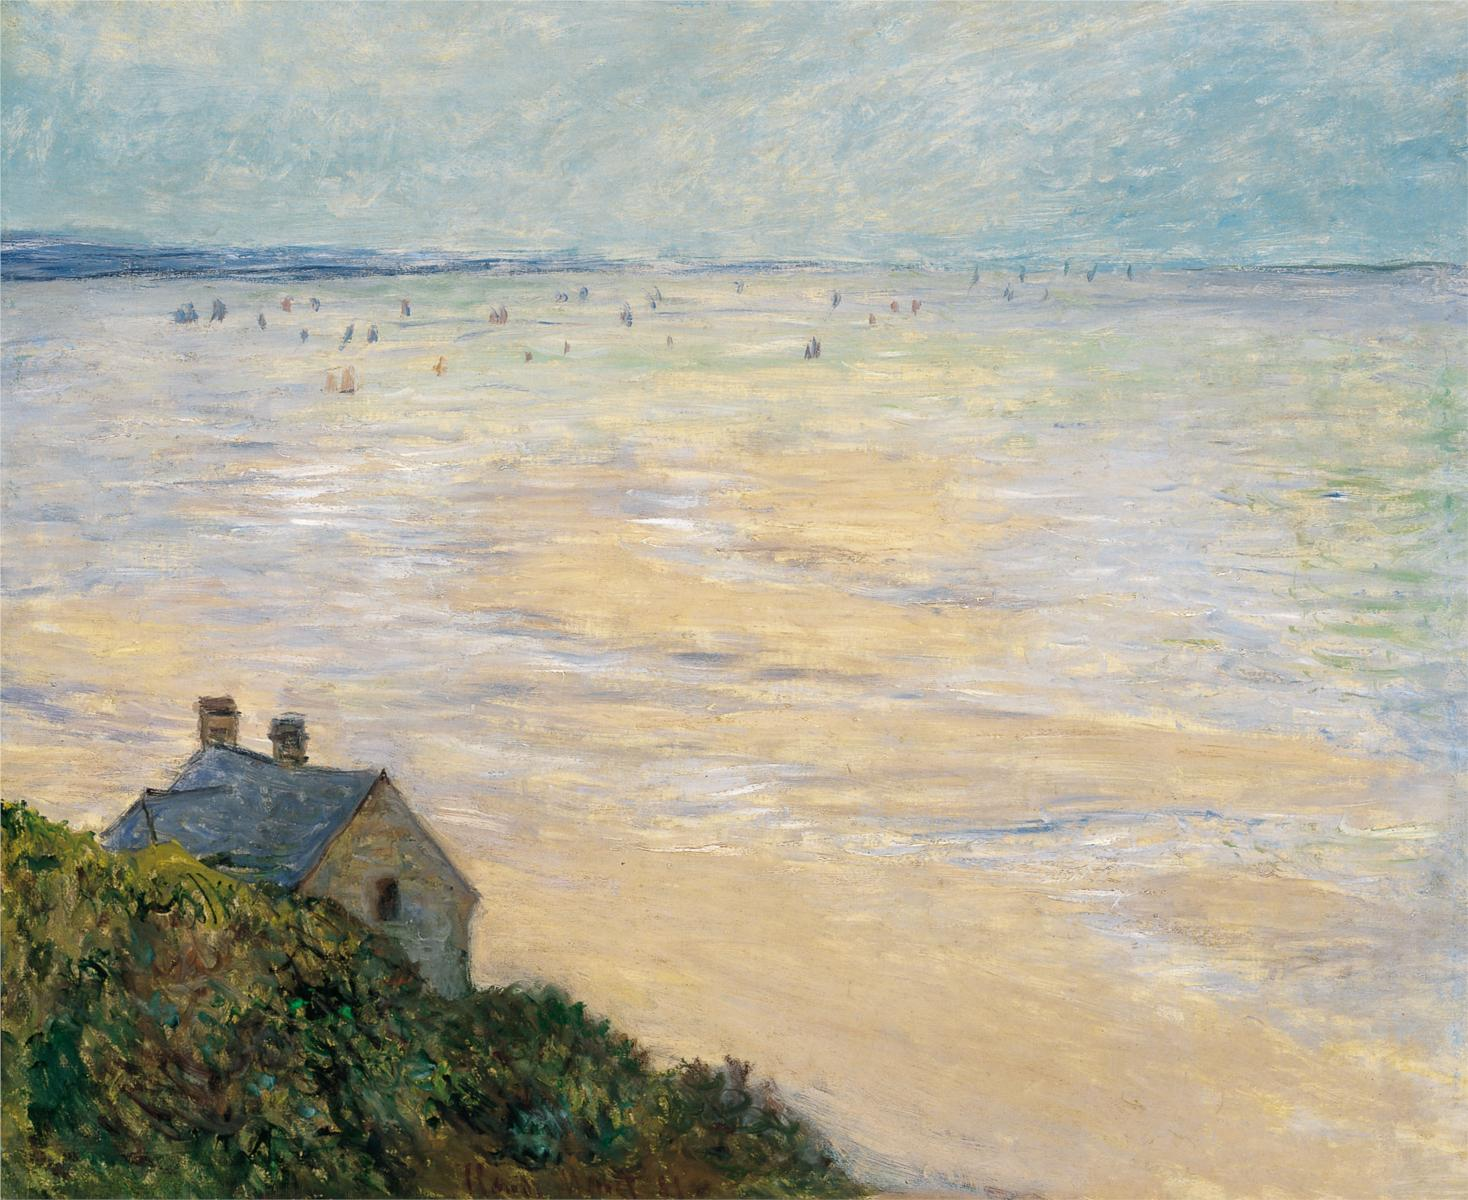 The Hut at Trouville, Low Tide, by Claude Monet, (1881), courtesy of Wikipaintings